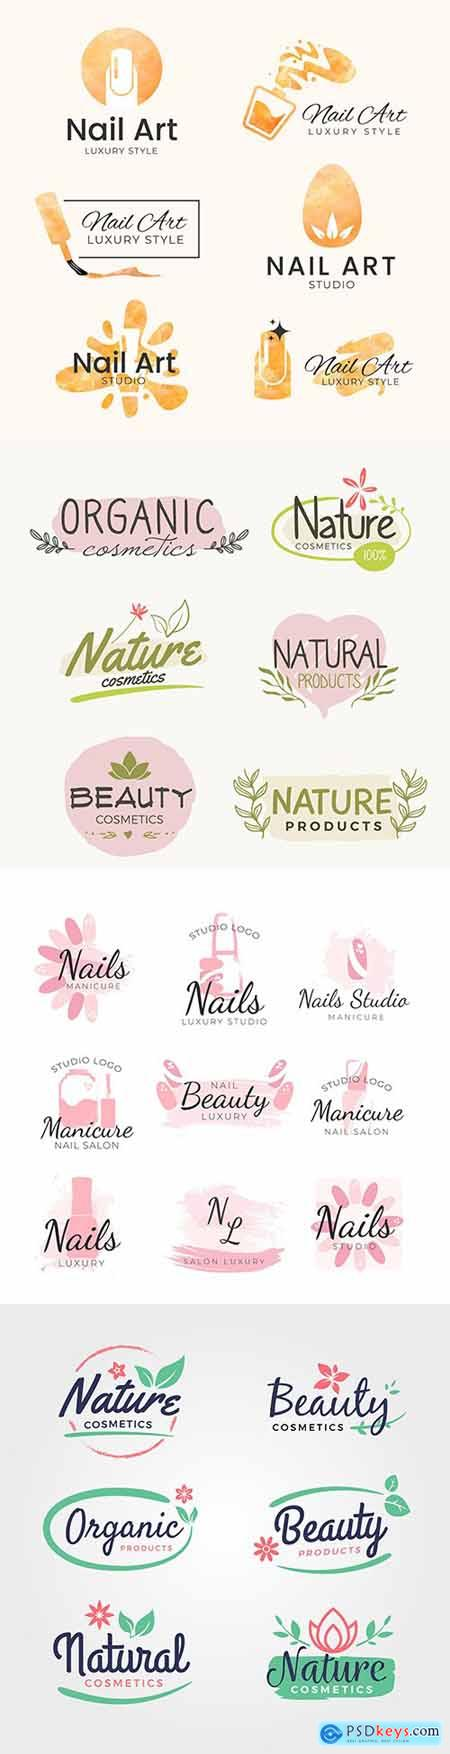 Brand name company logos business corporate design 33217